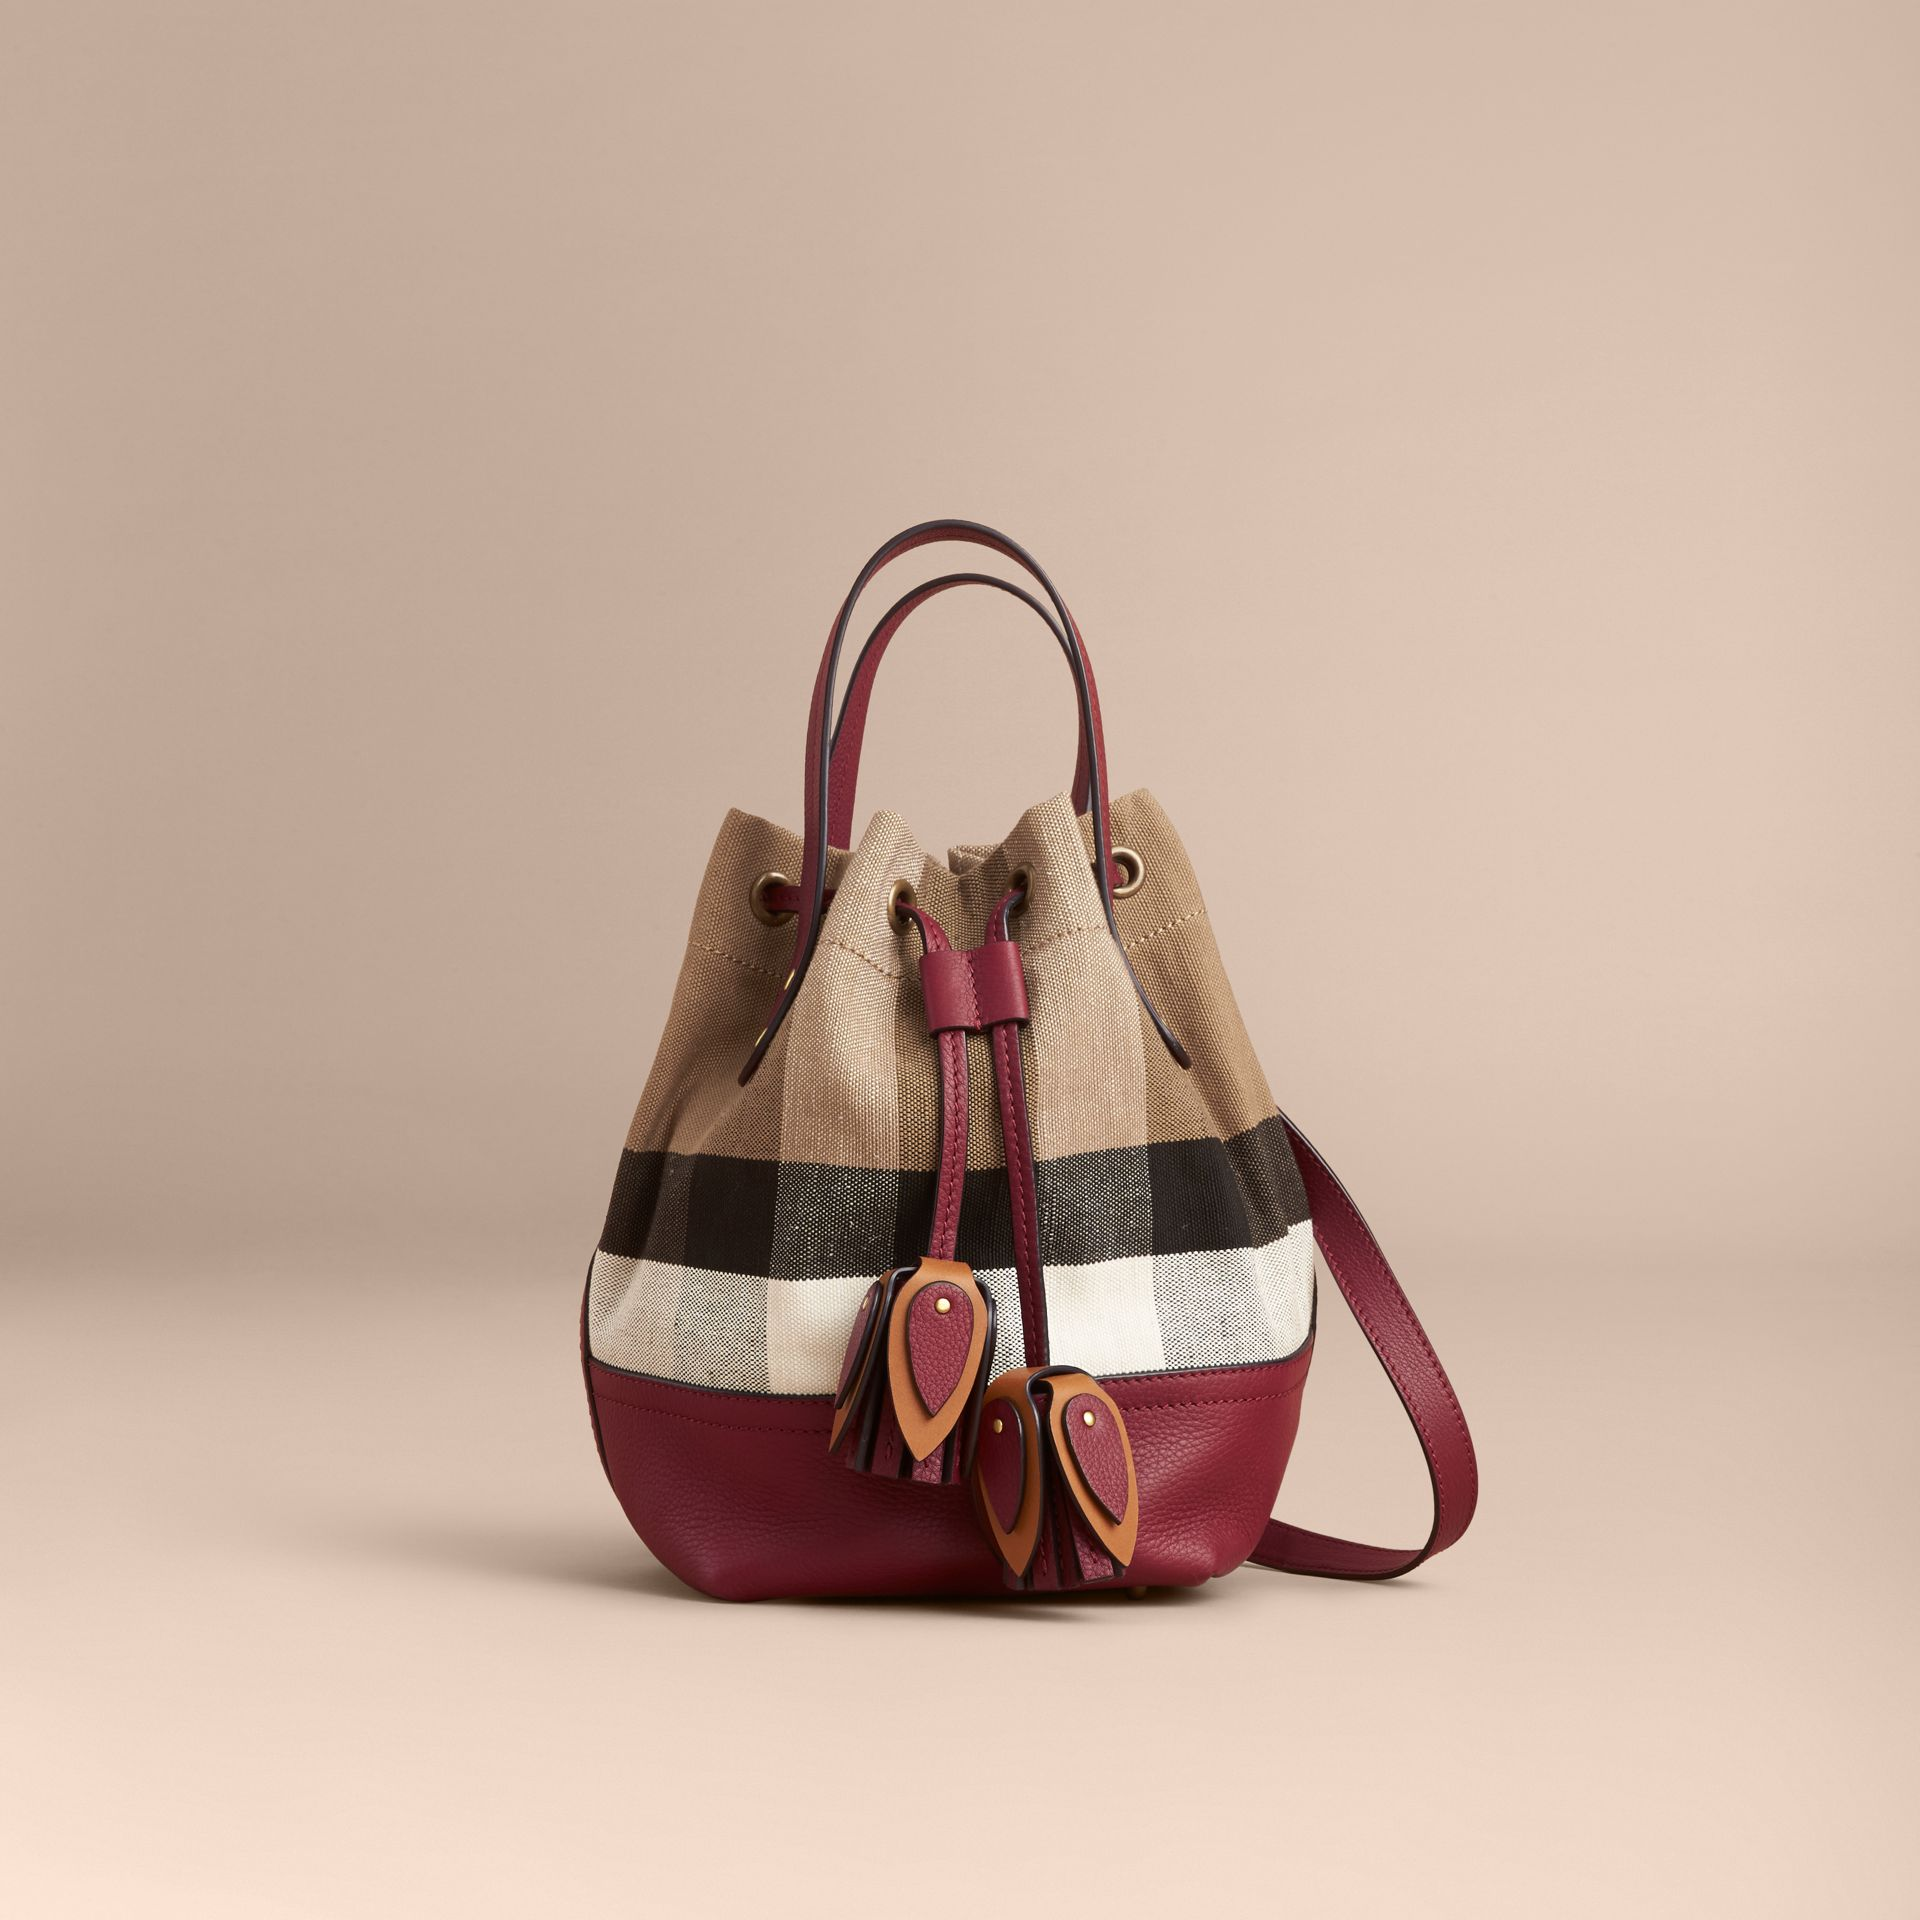 Small Canvas Check and Leather Bucket Bag in Burgundy Red - Women | Burberry Singapore - gallery image 8